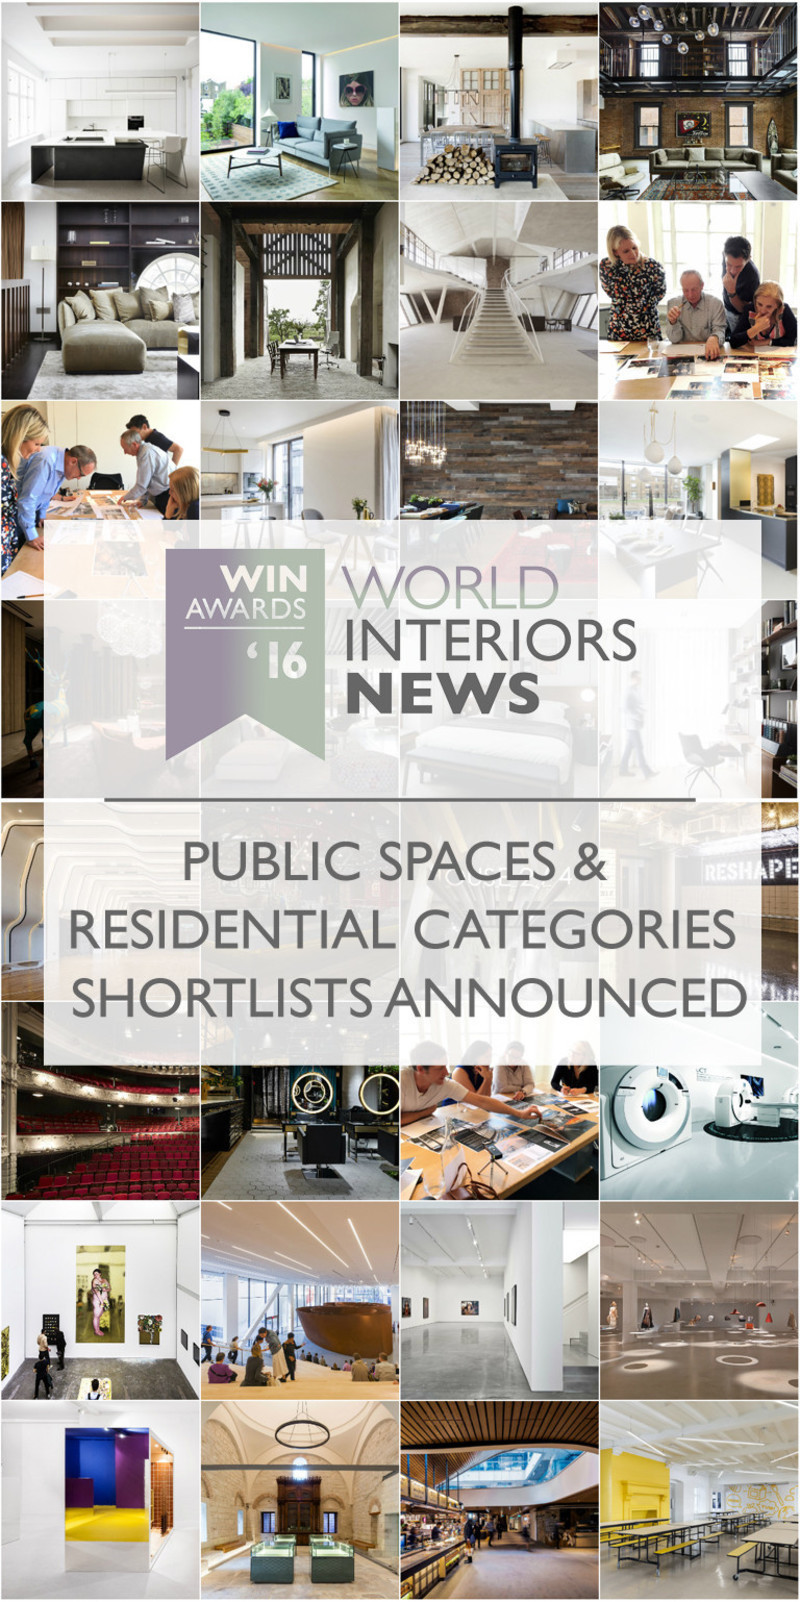 Press kit - Press release - WIN Awards - Public Spaces + Residential Categories Shortlists Announced - World Interiors News